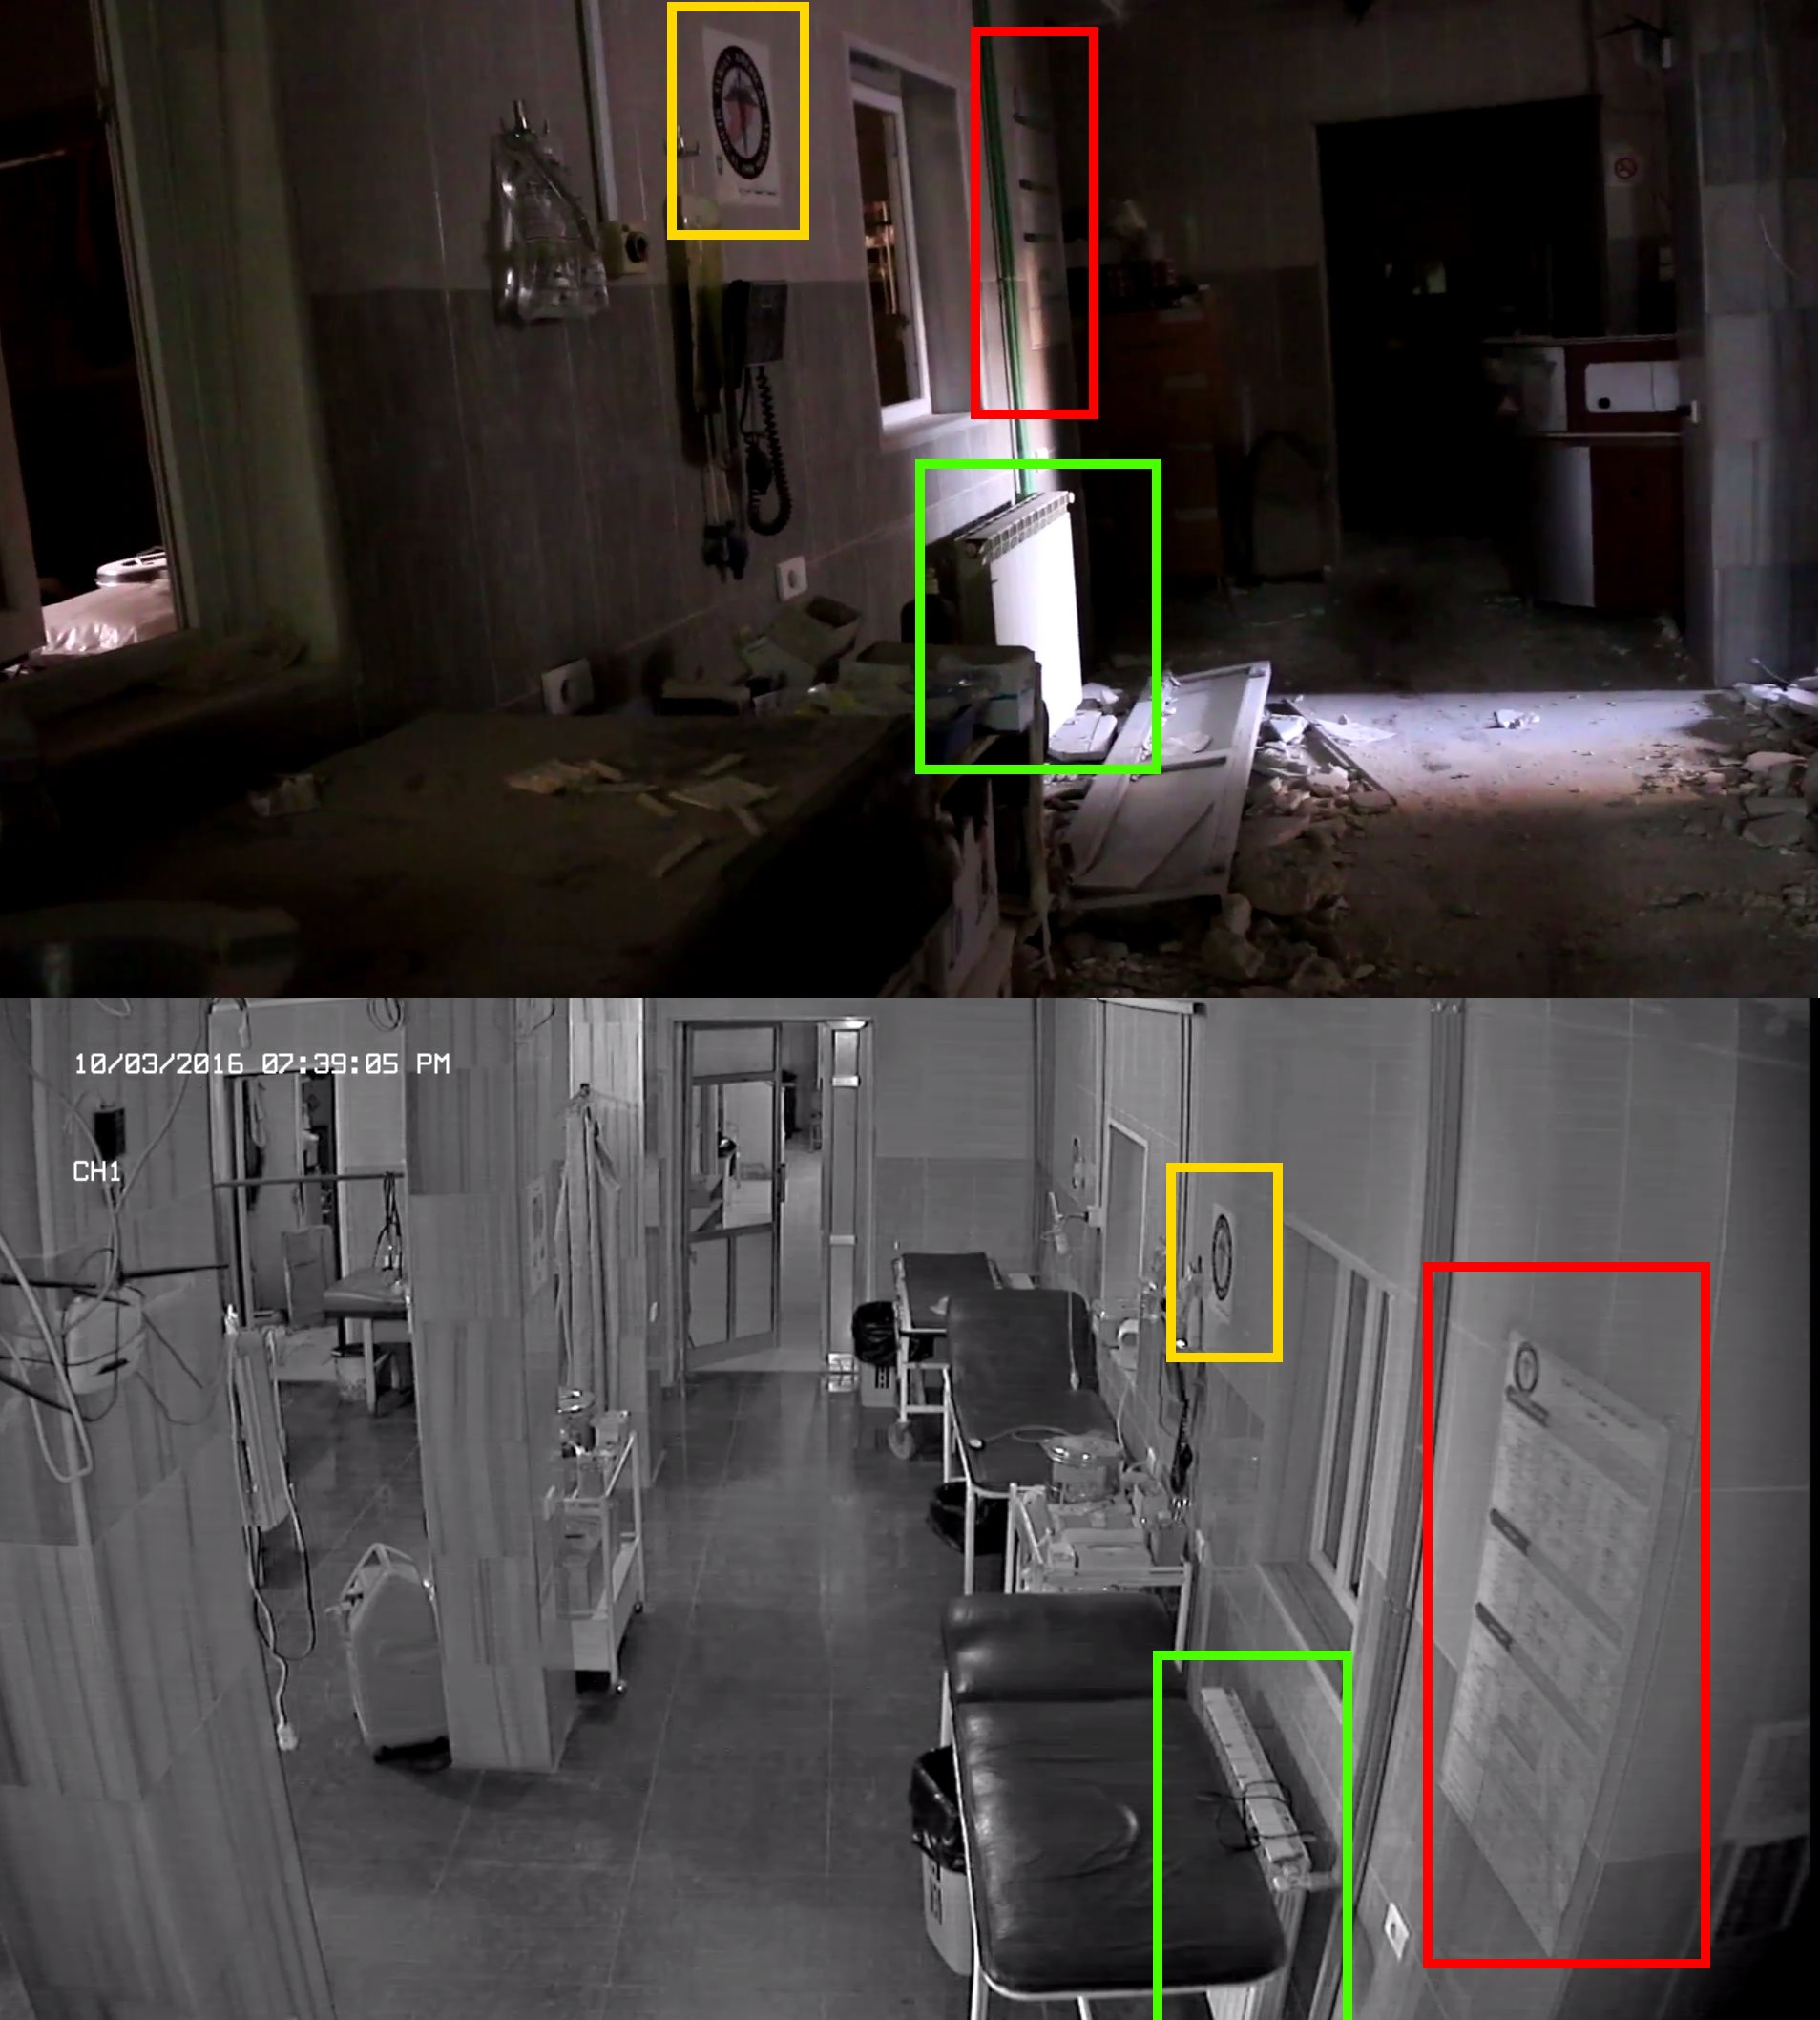 basement-camera-comparison